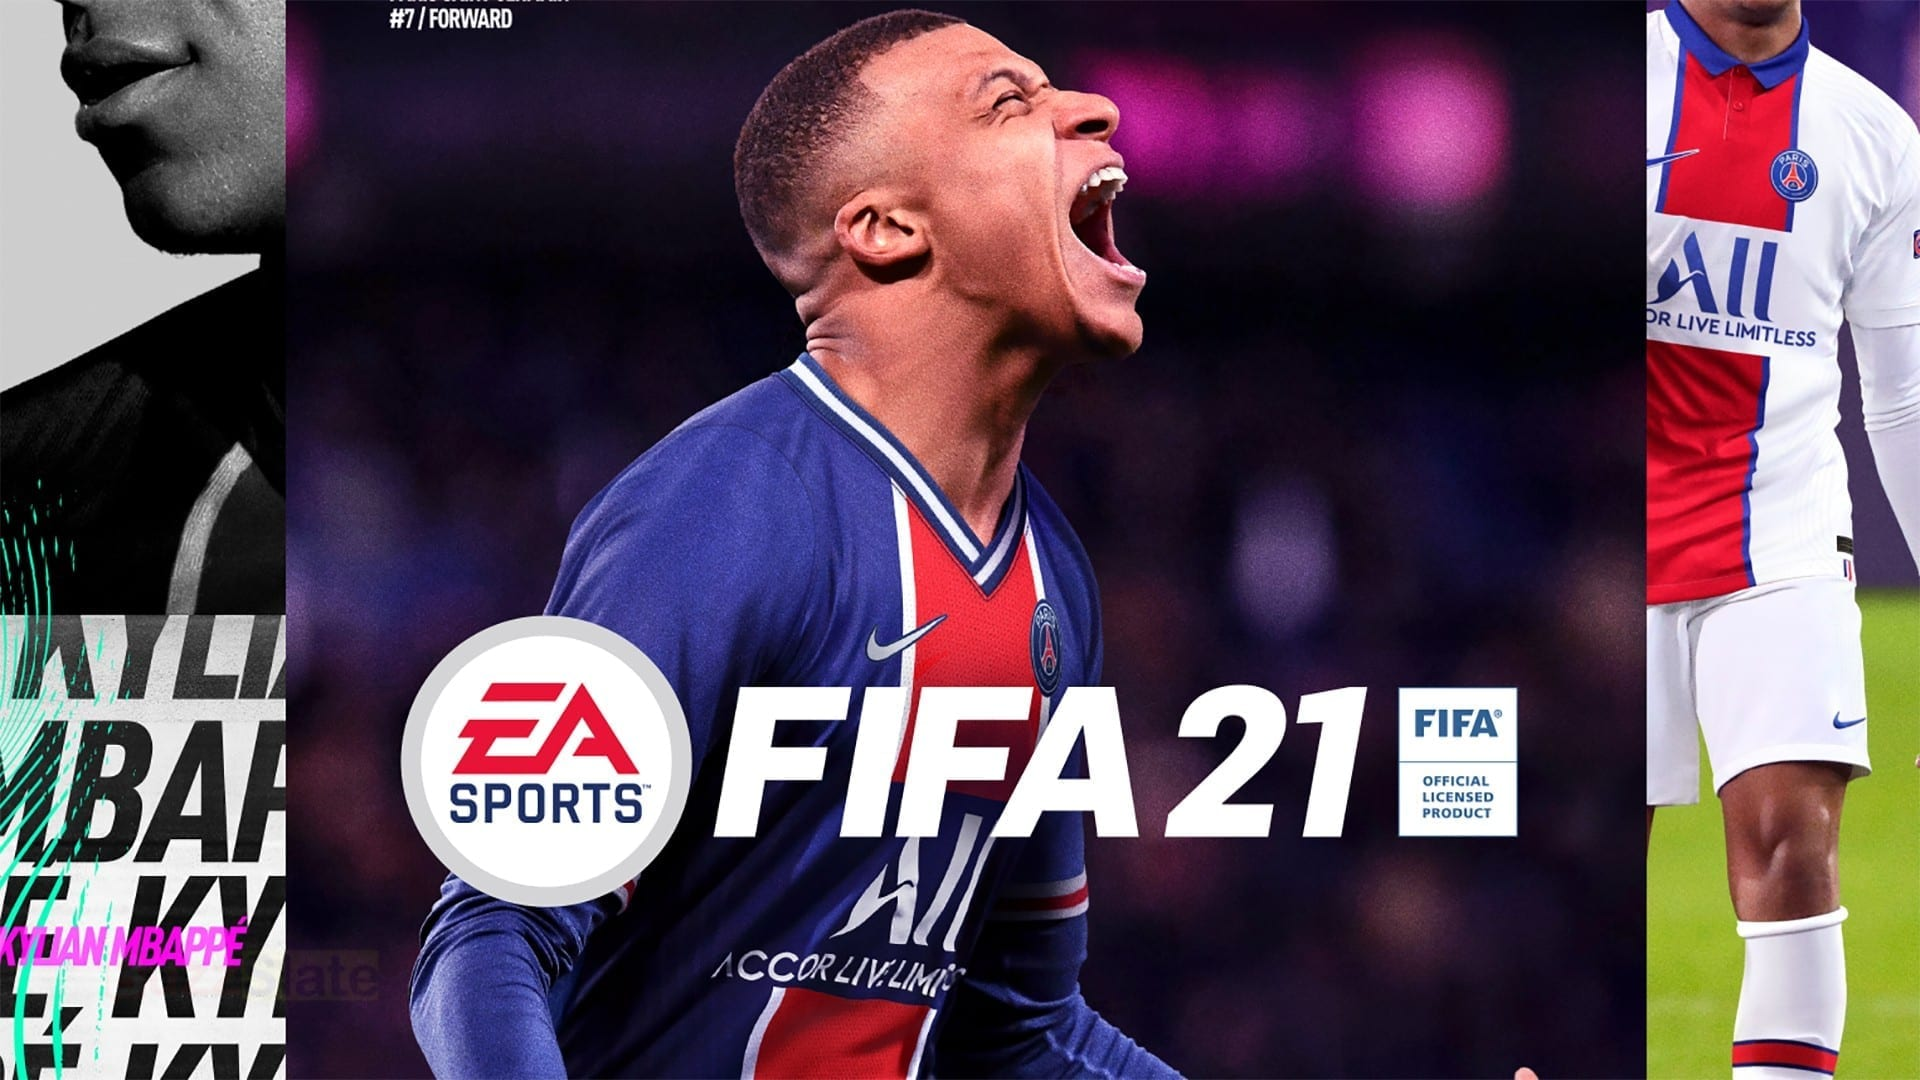 Highest-rated players in FIFA 21